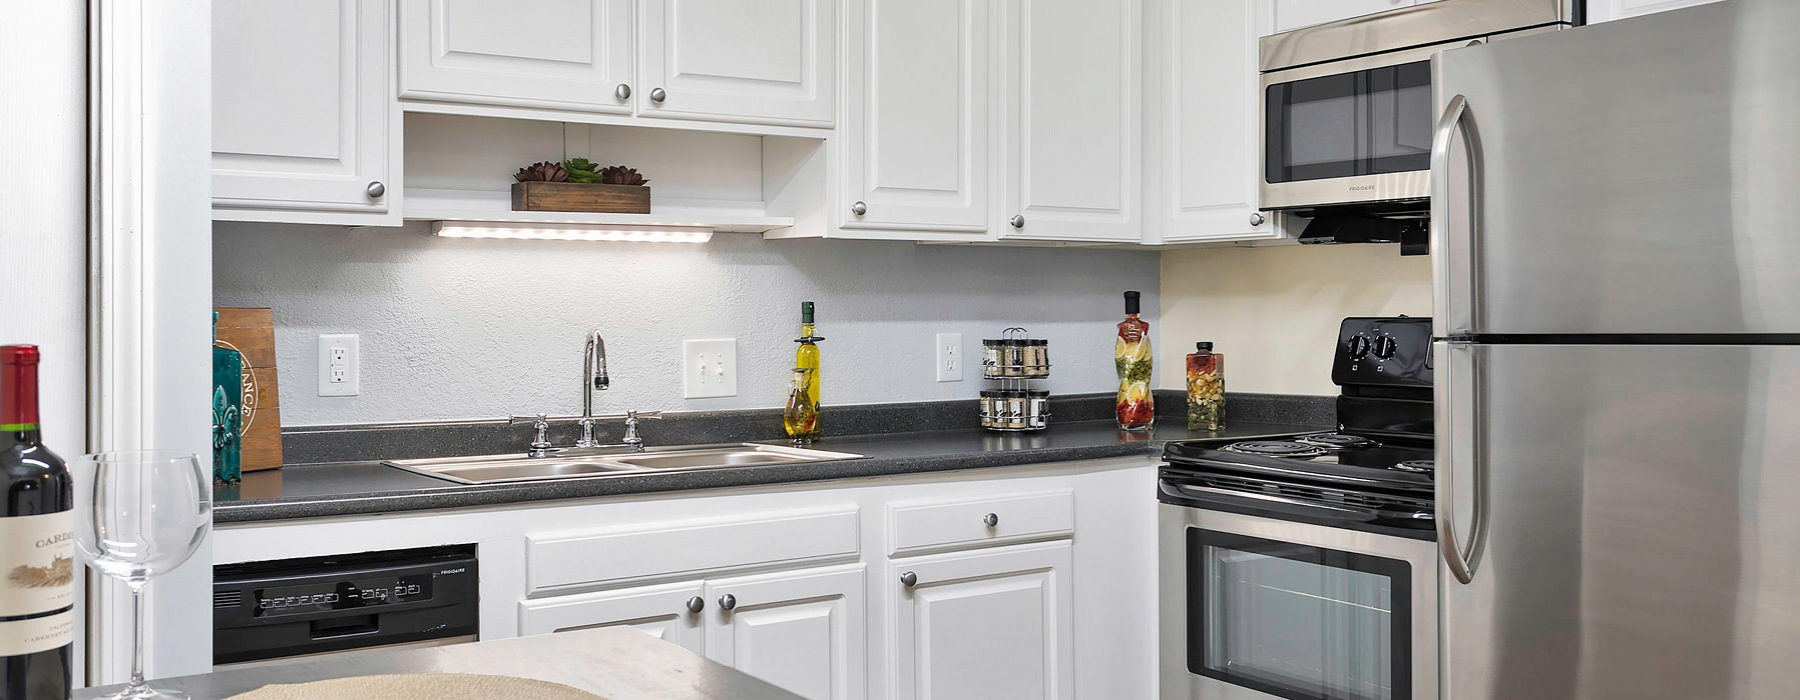 brightly lit kitchen with white cabinetry